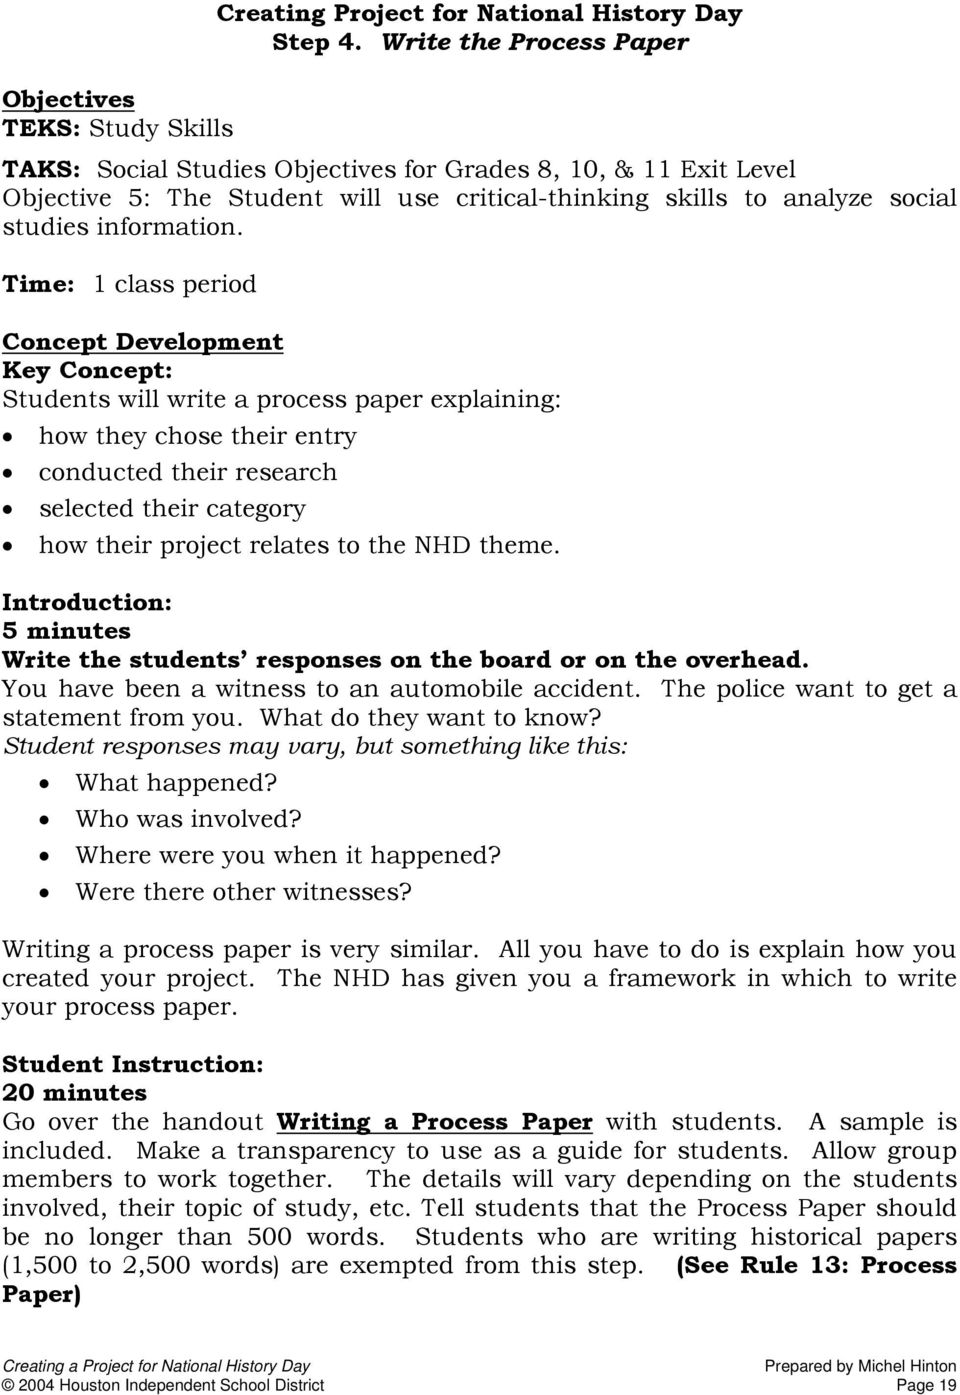 how to do a process paper